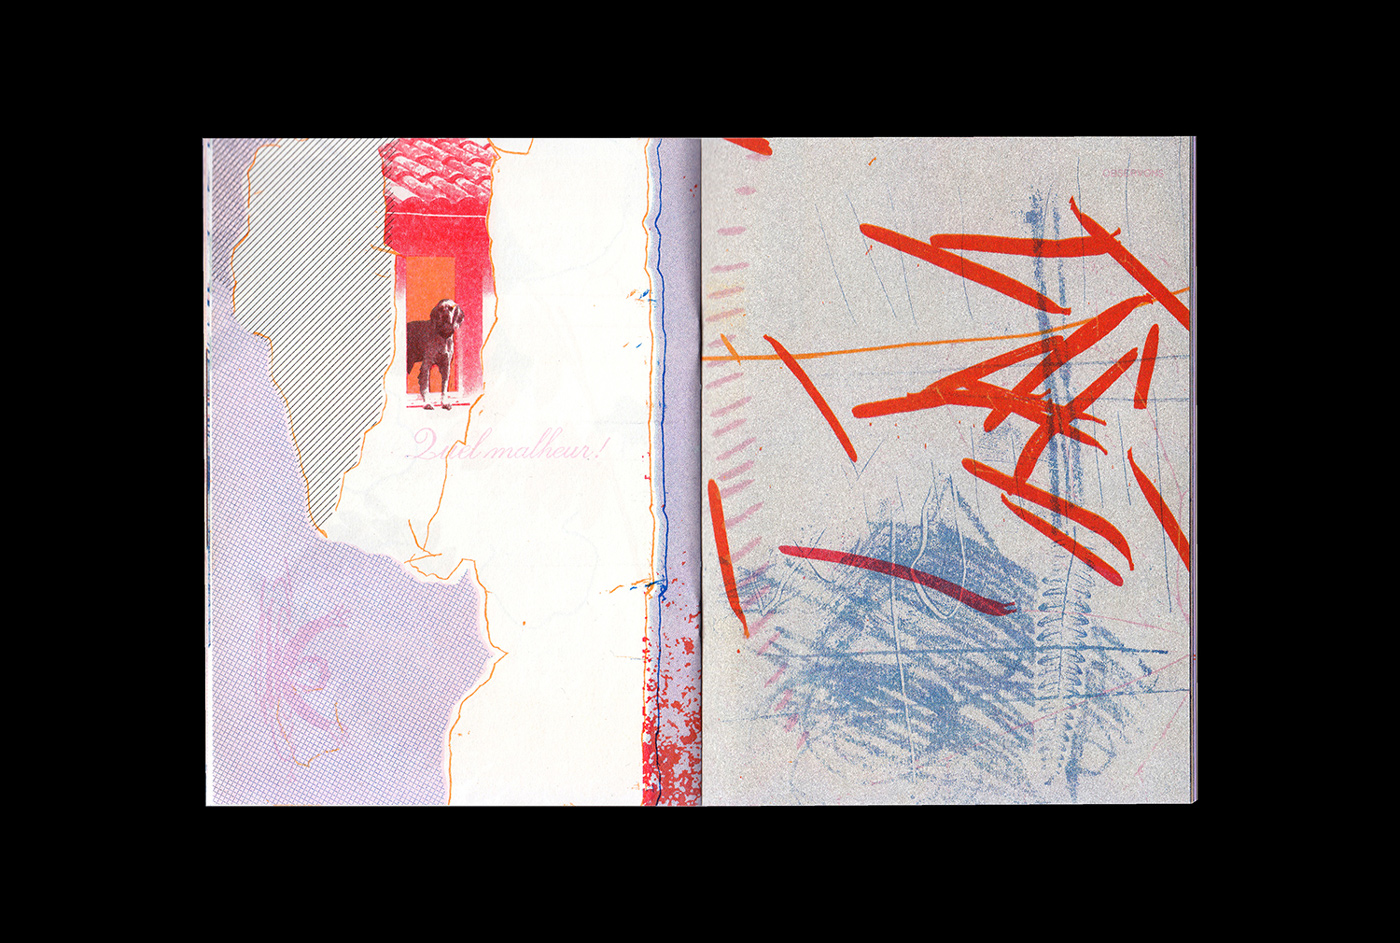 10 collide24 Riso Sur Mer - Riso sur Mer is a experimental riso-printing collective, collaborating across continents